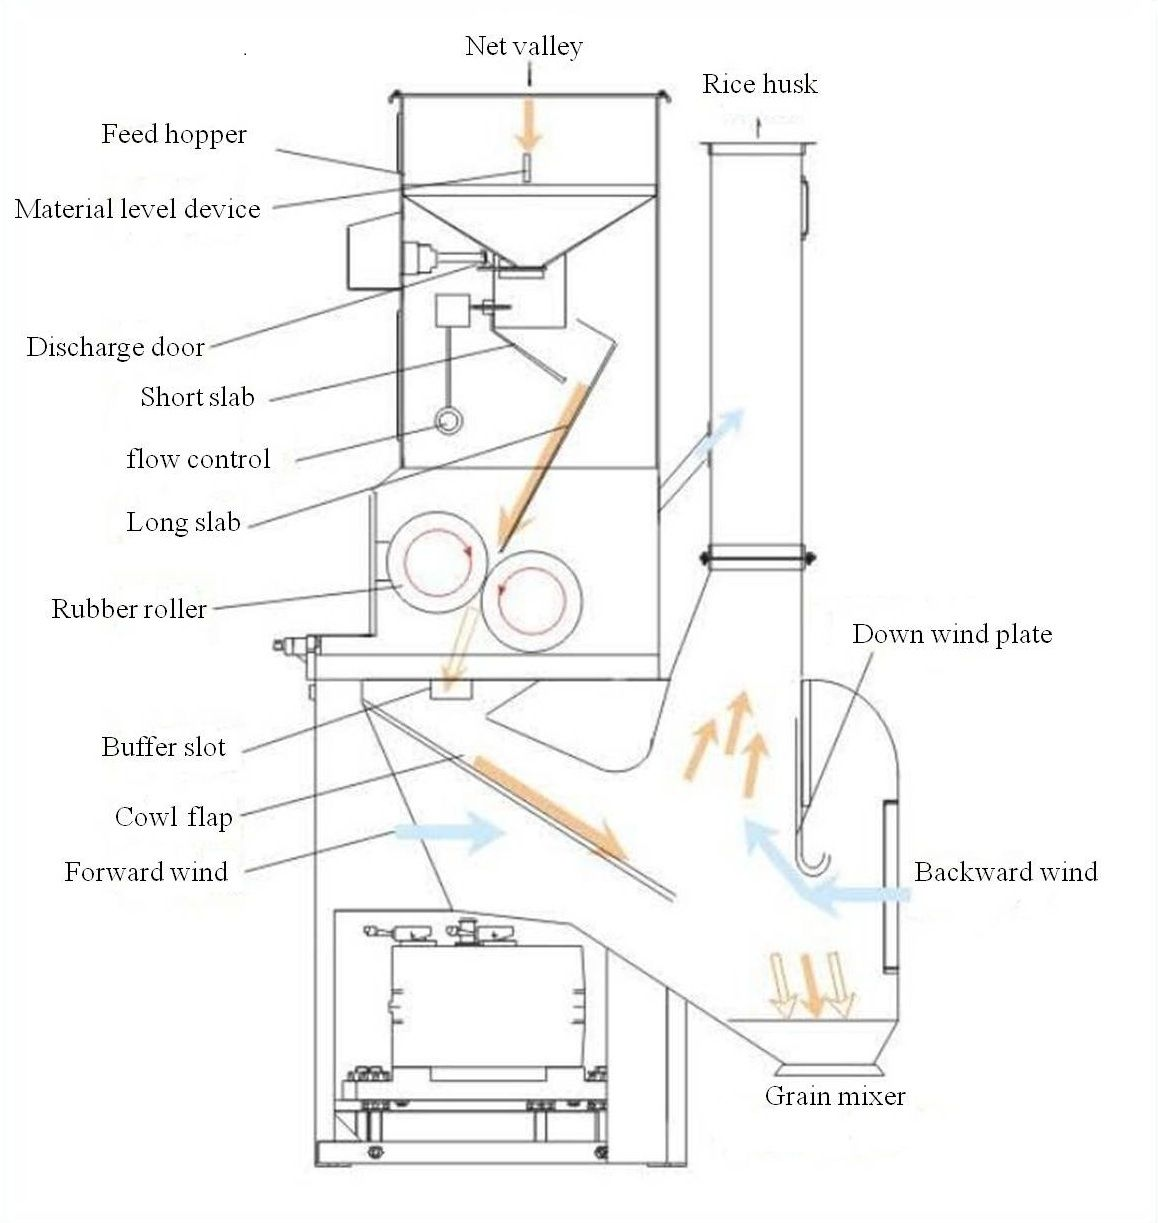 Process Flow Diagram Rice Mill